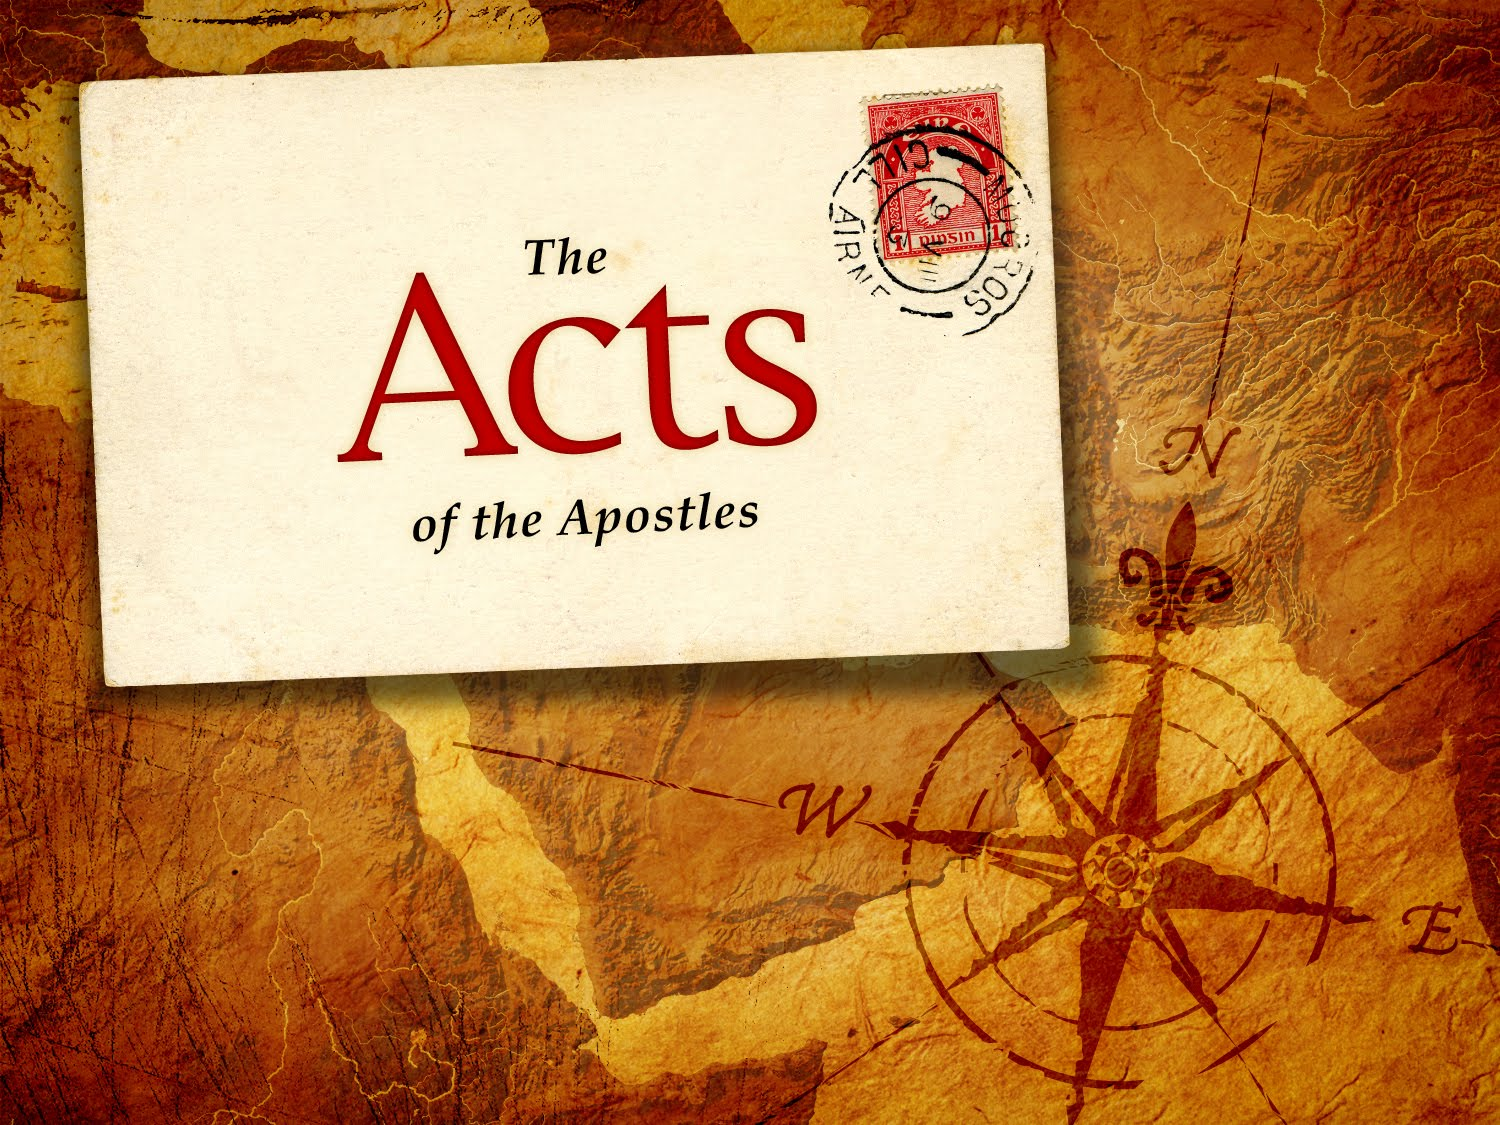 a reflection paper on the writings of the apostle paul to the church of ephesus in ephesians A reflection paper on the writings of the apostle paul to the church of ephesus in ephesians.